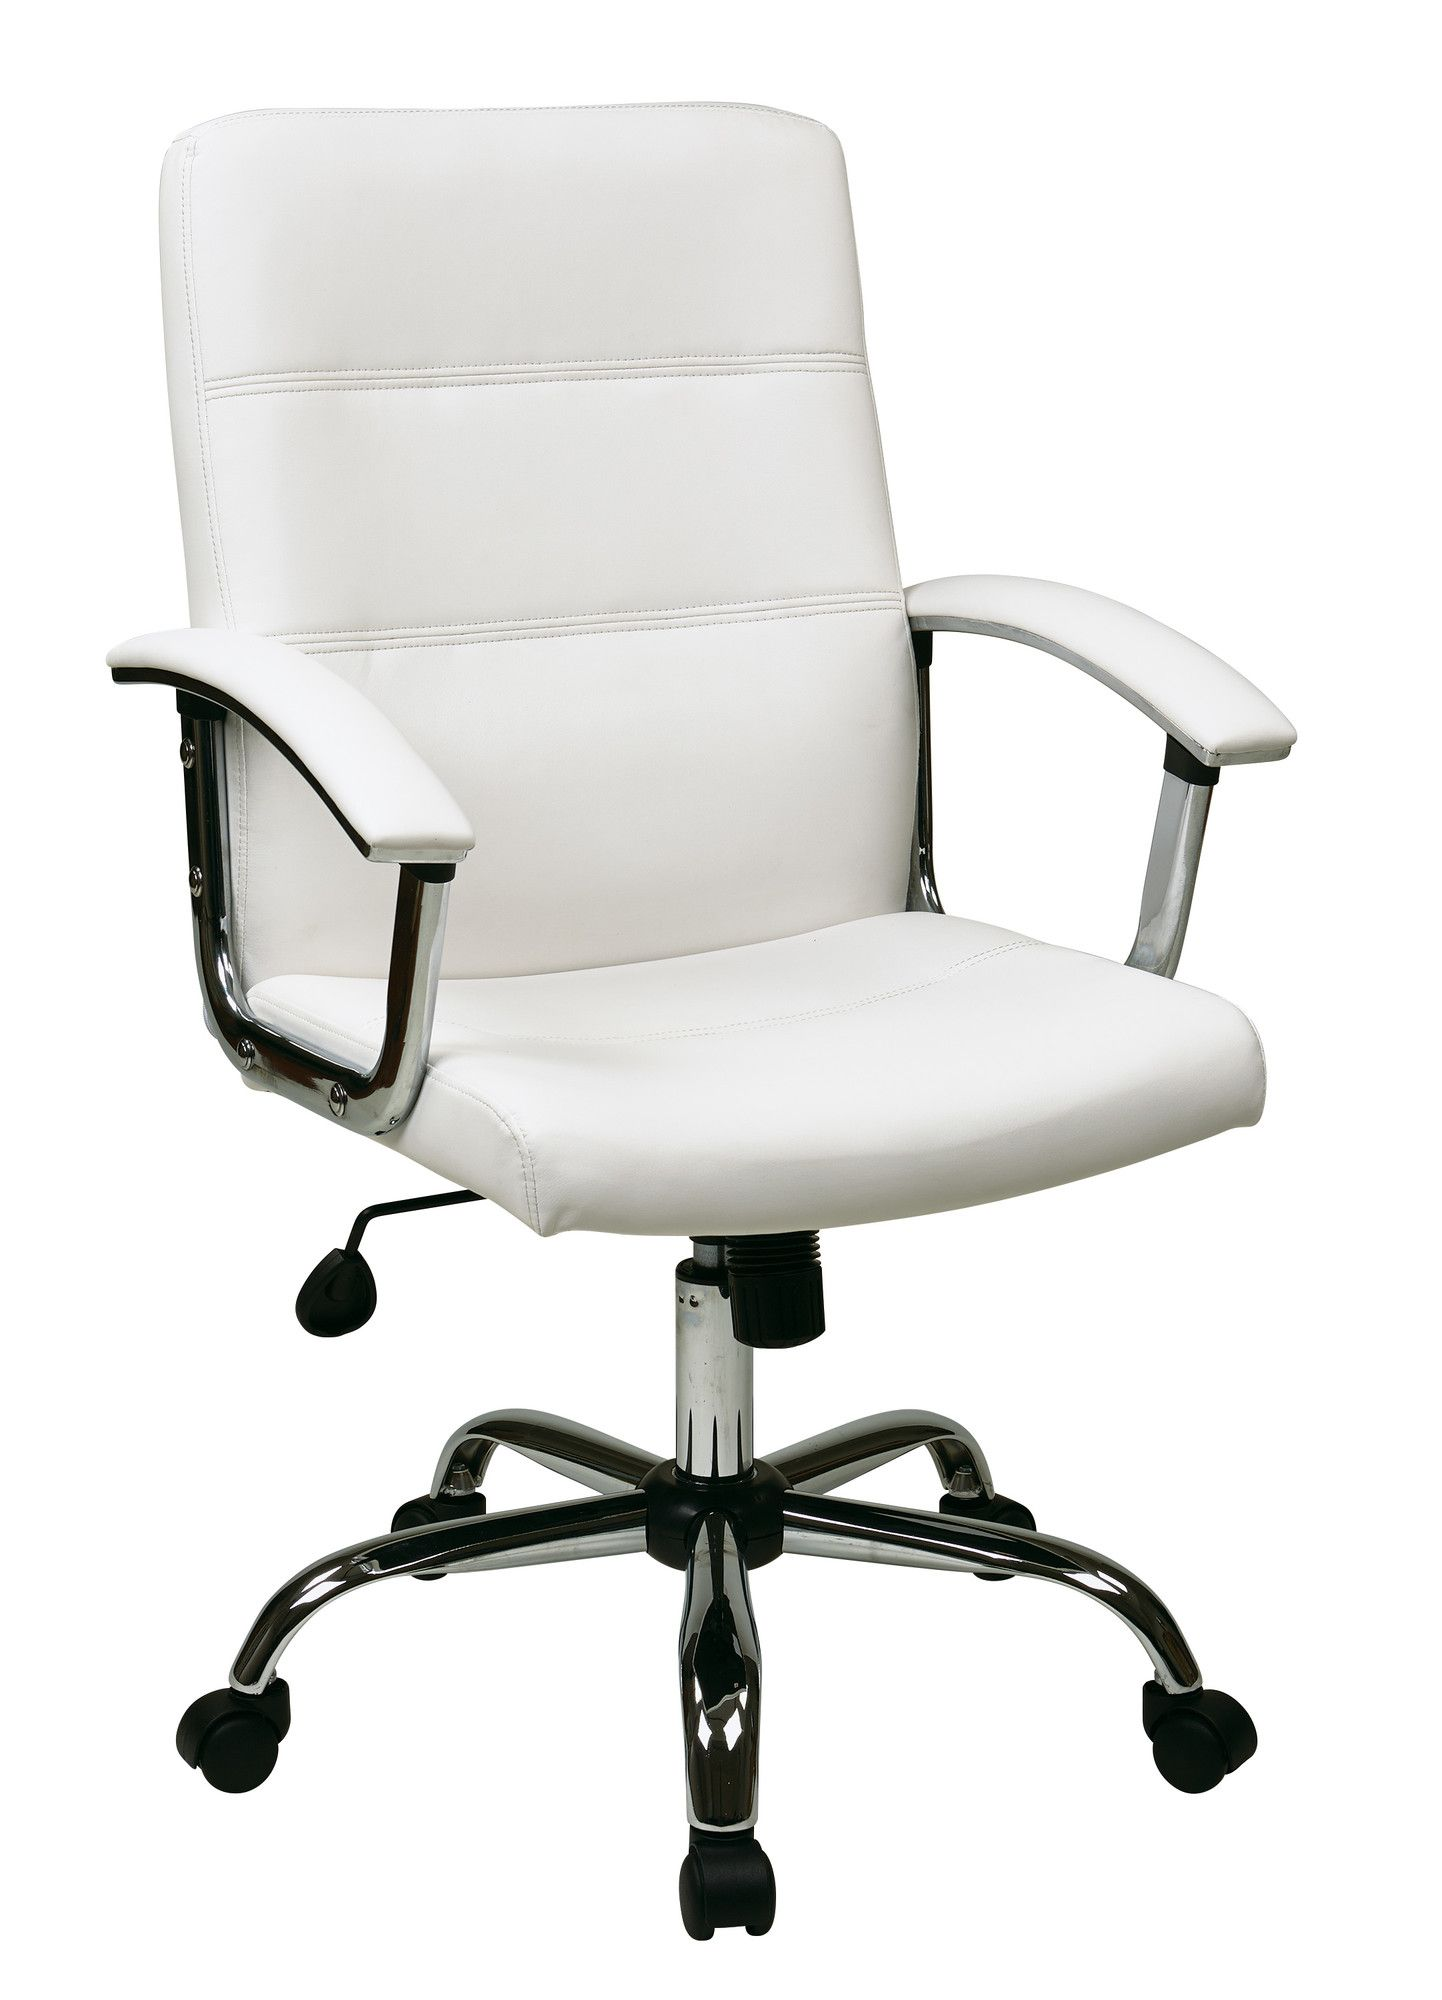 Five Best Office Chairs Steelcase Leap Chair Upholstery Leap Chair